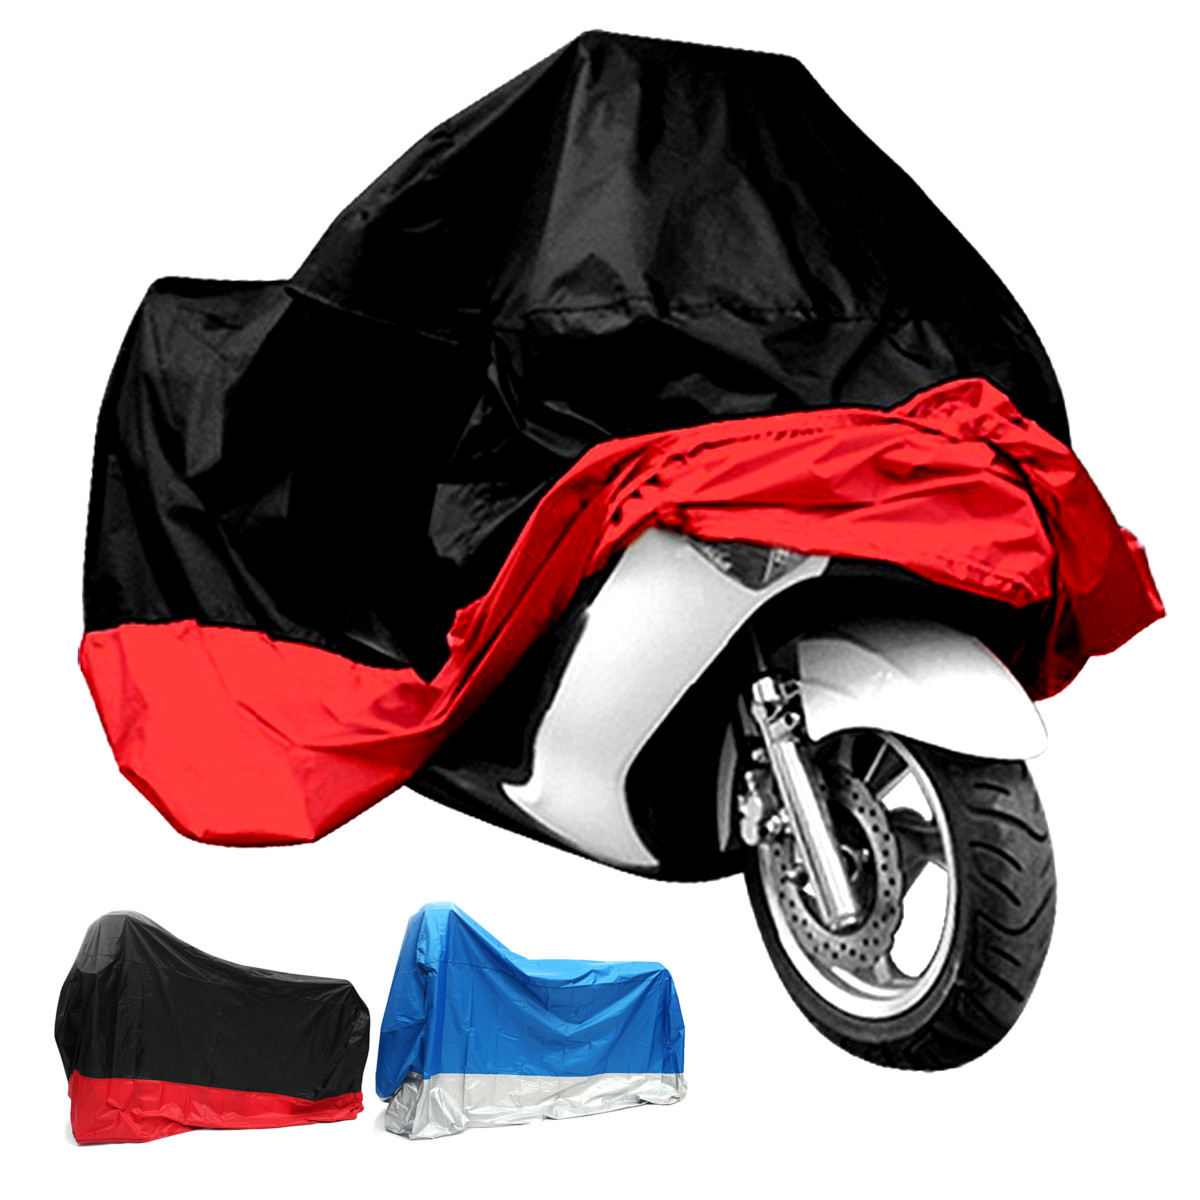 Motorcycle Covers Product : T waterproof motorcycle cover uv protector anti wind